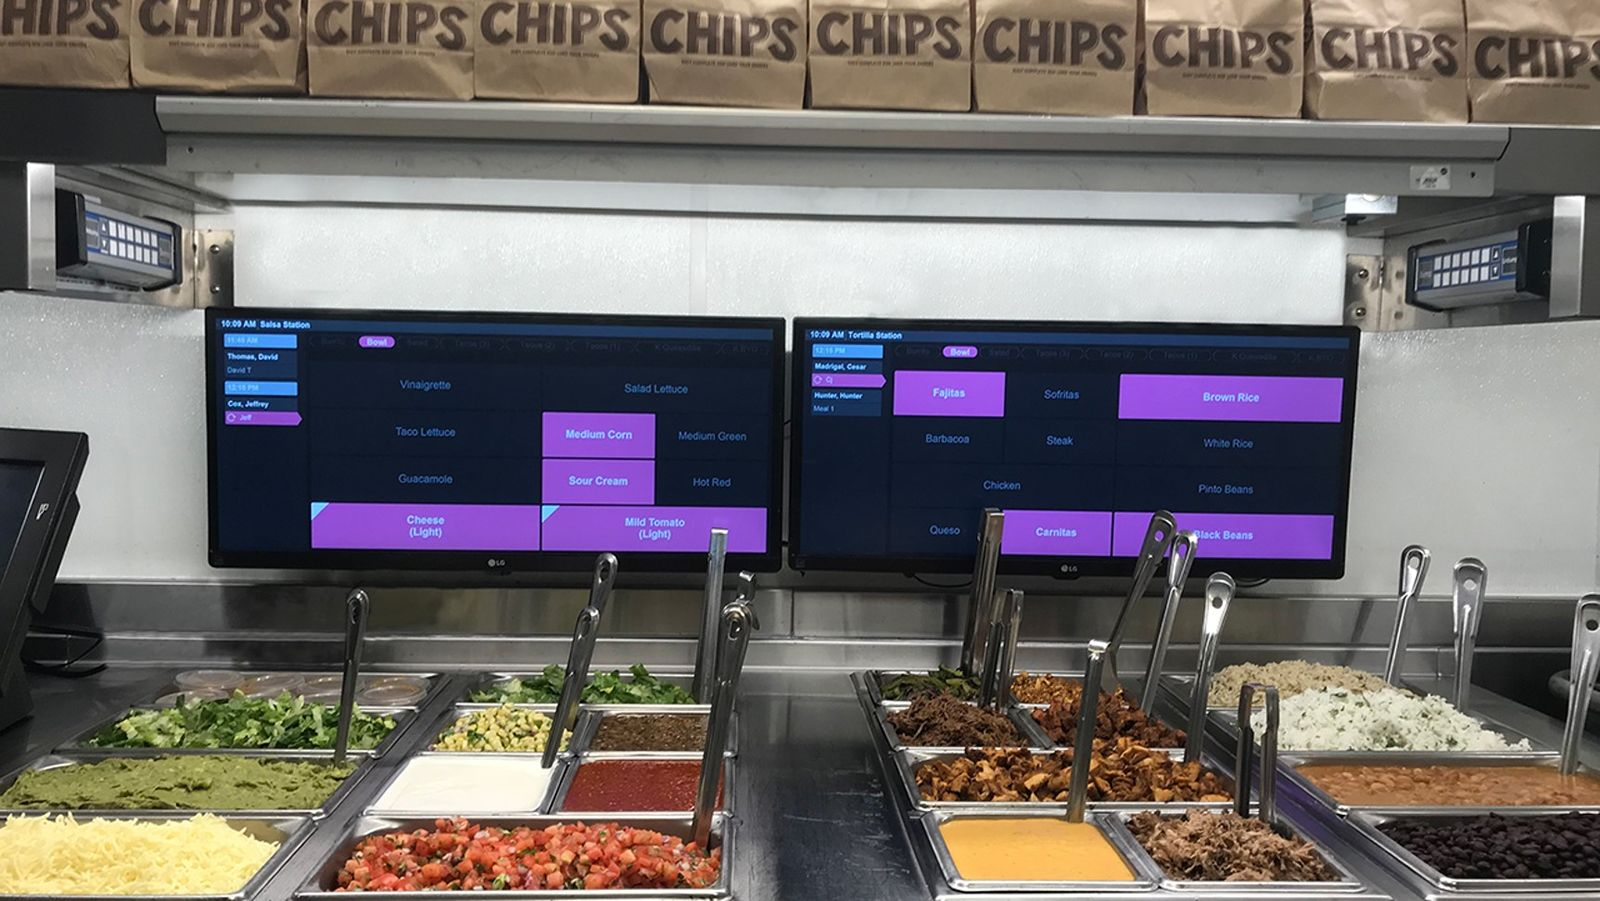 Chipotle Debuts New Restaurant Design To Support Its $1 Billion Digital Business